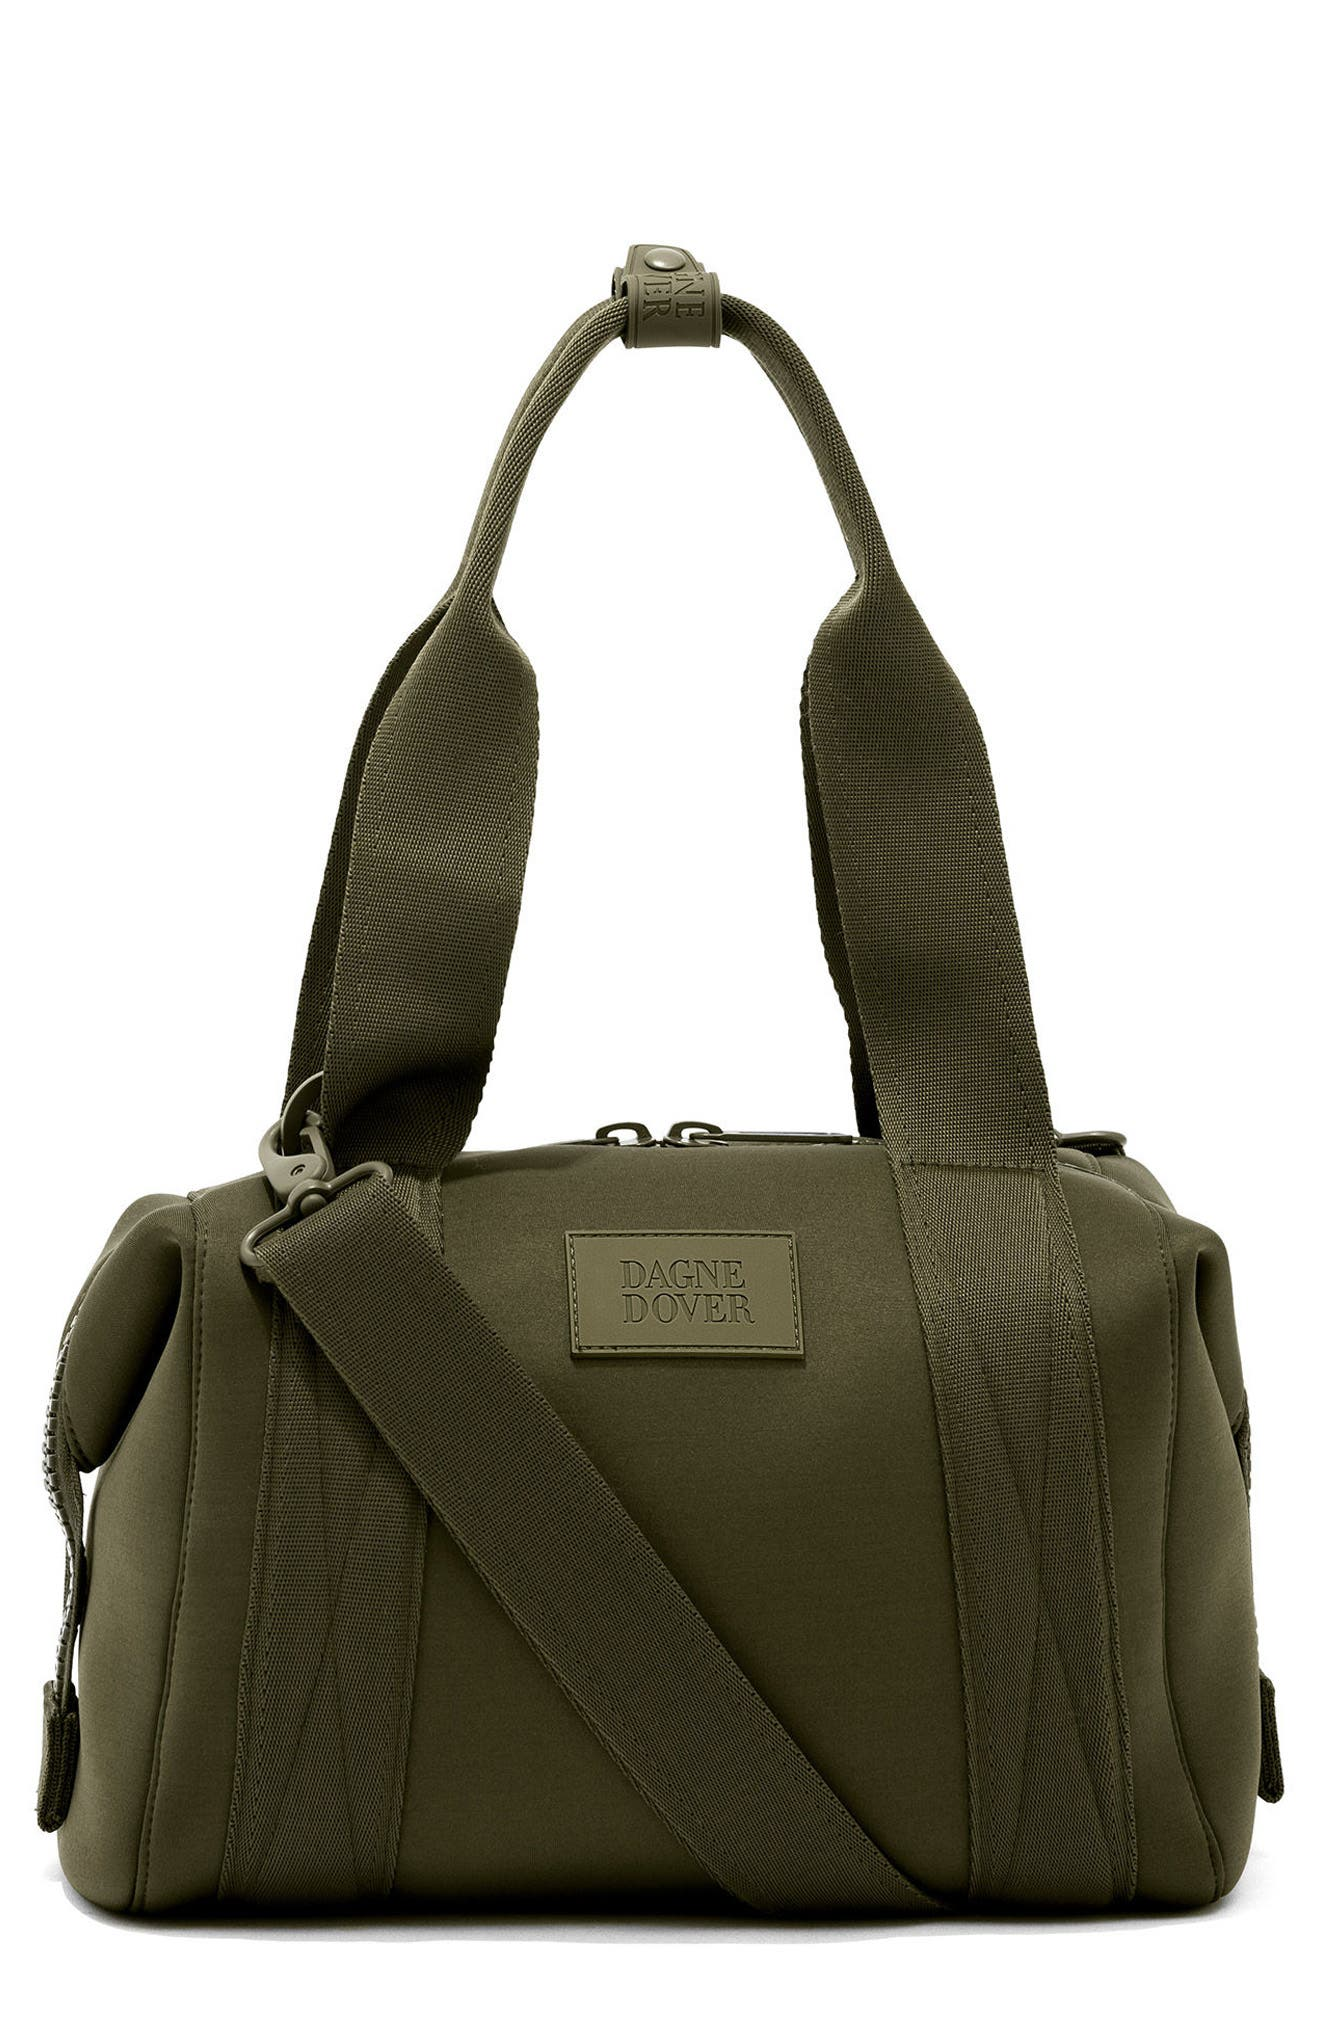 Alternate Image 1 Selected - Dagne Dover Small 365 Landon Neoprene Duffel Bag